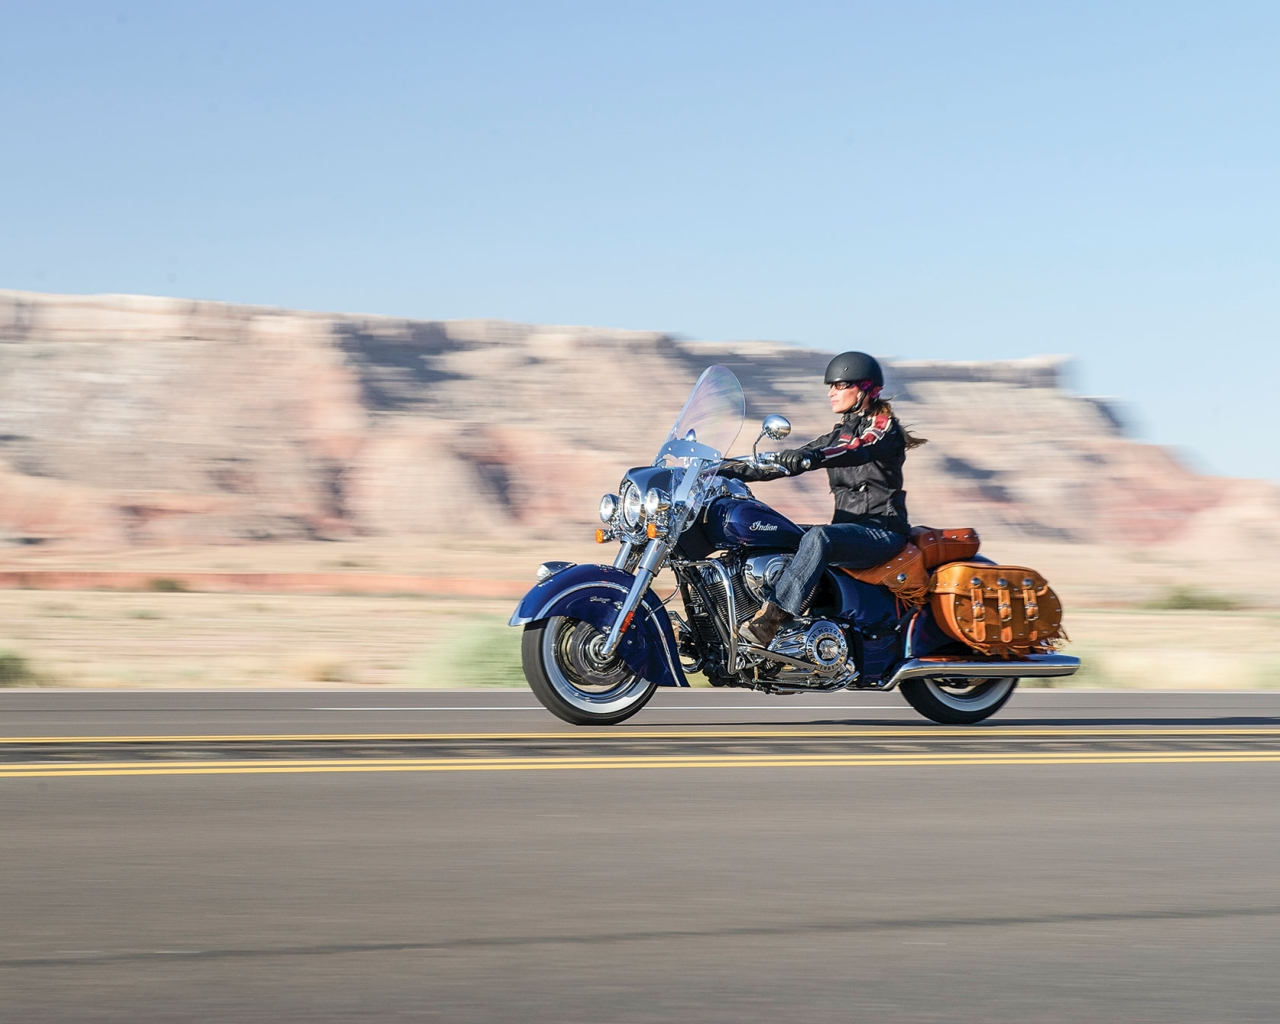 Indian Chief Vintage 2014 - 1280x1024